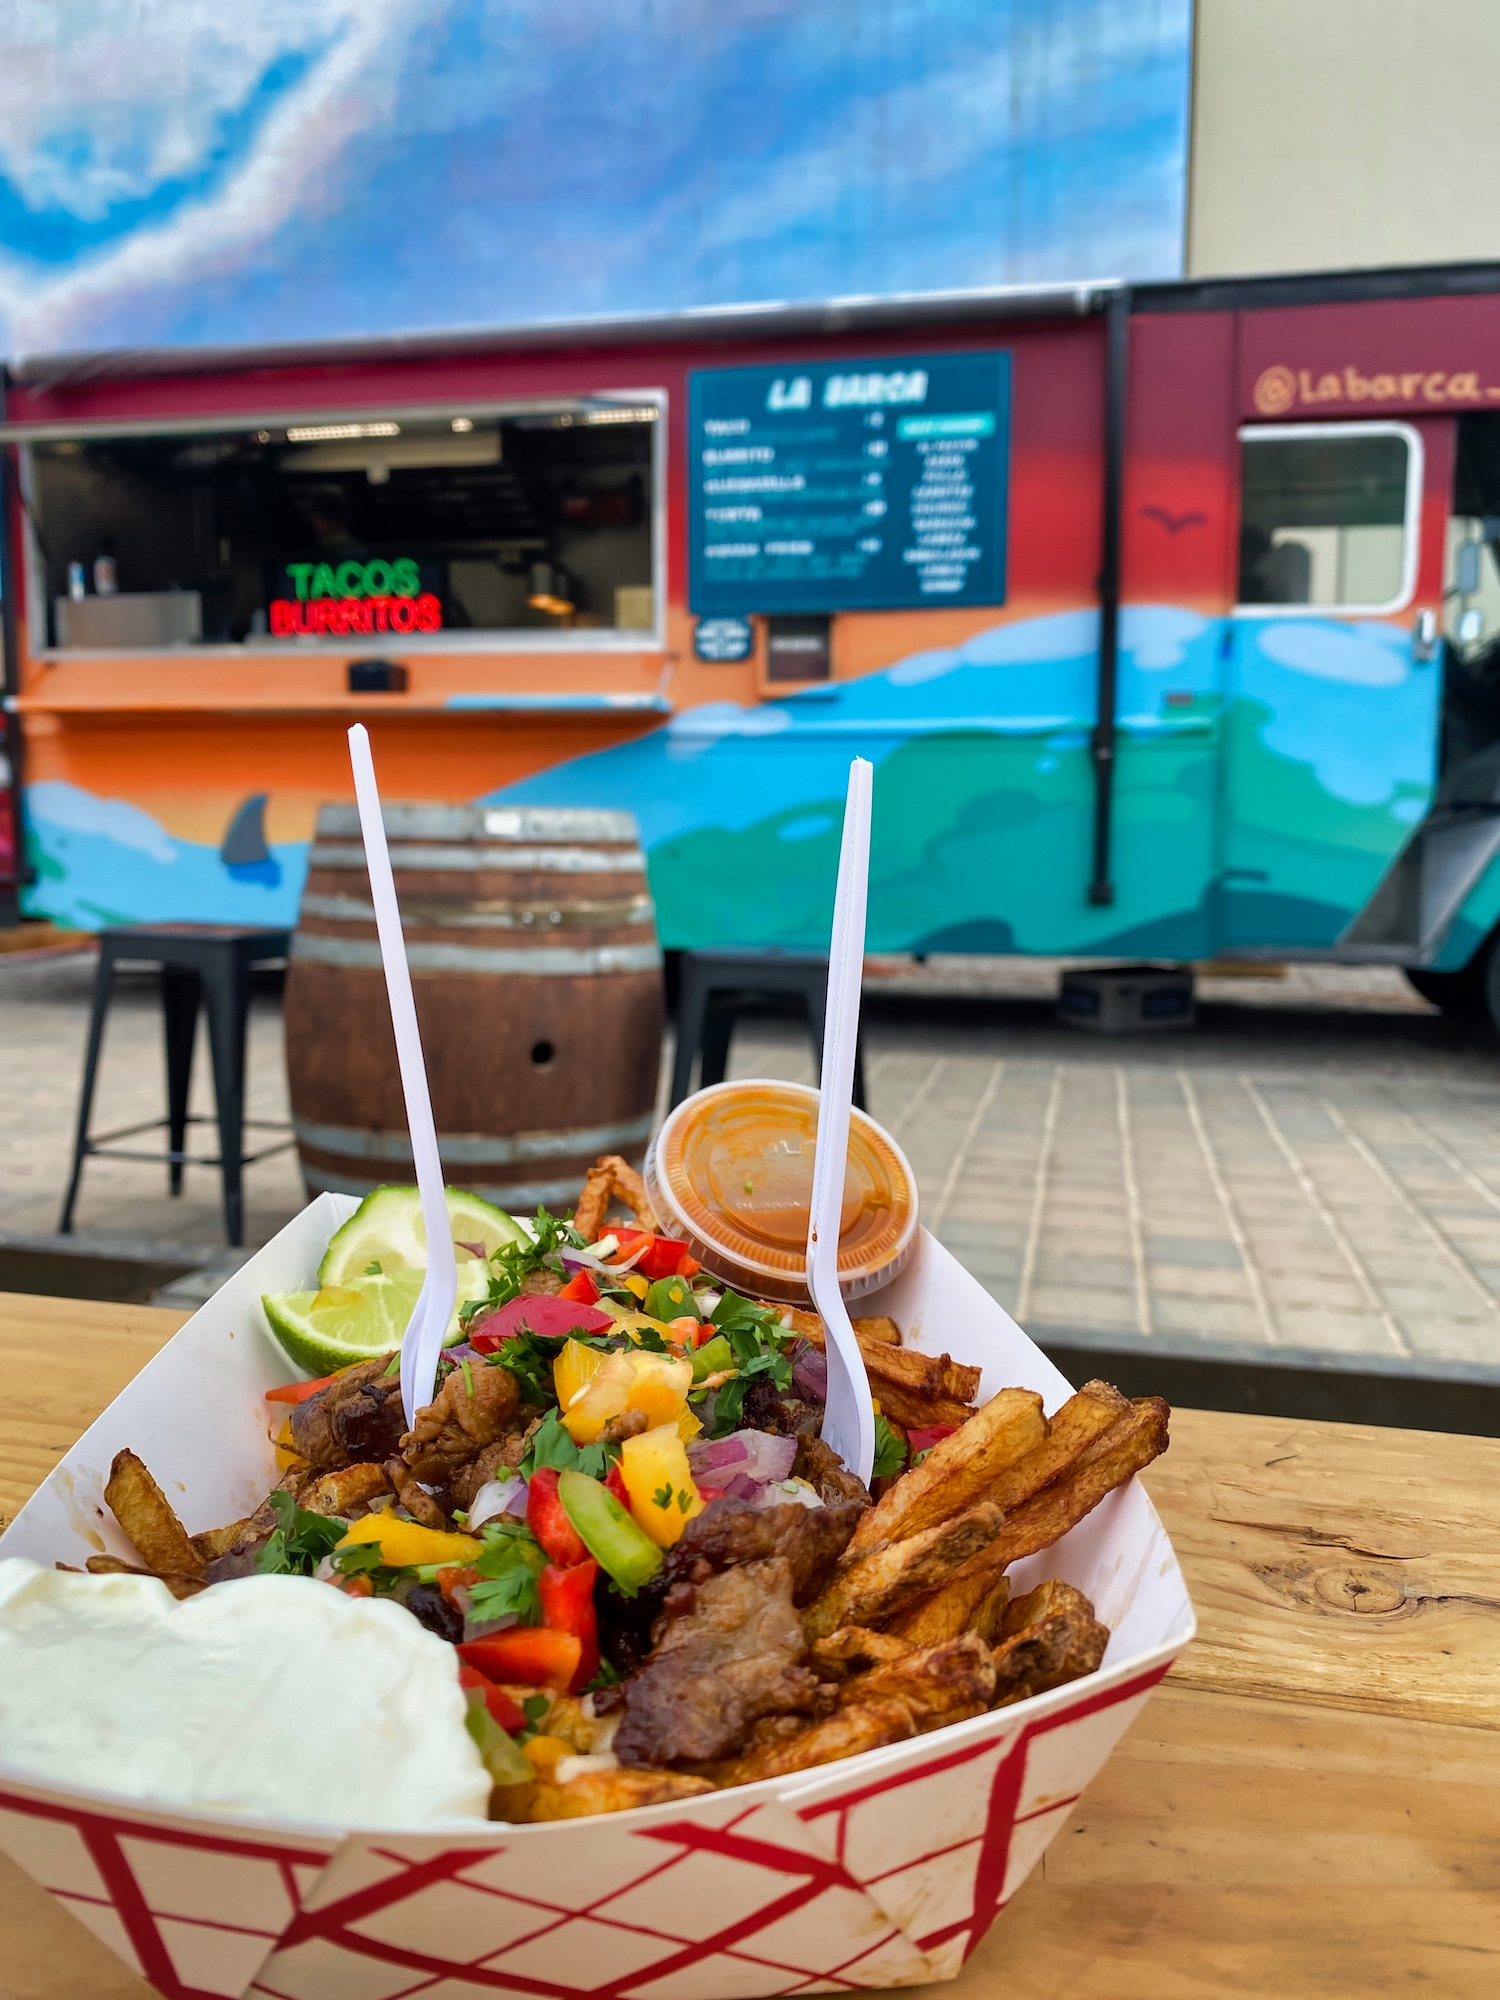 3 Days in Reno - Fries & Food Truck at The Eddy